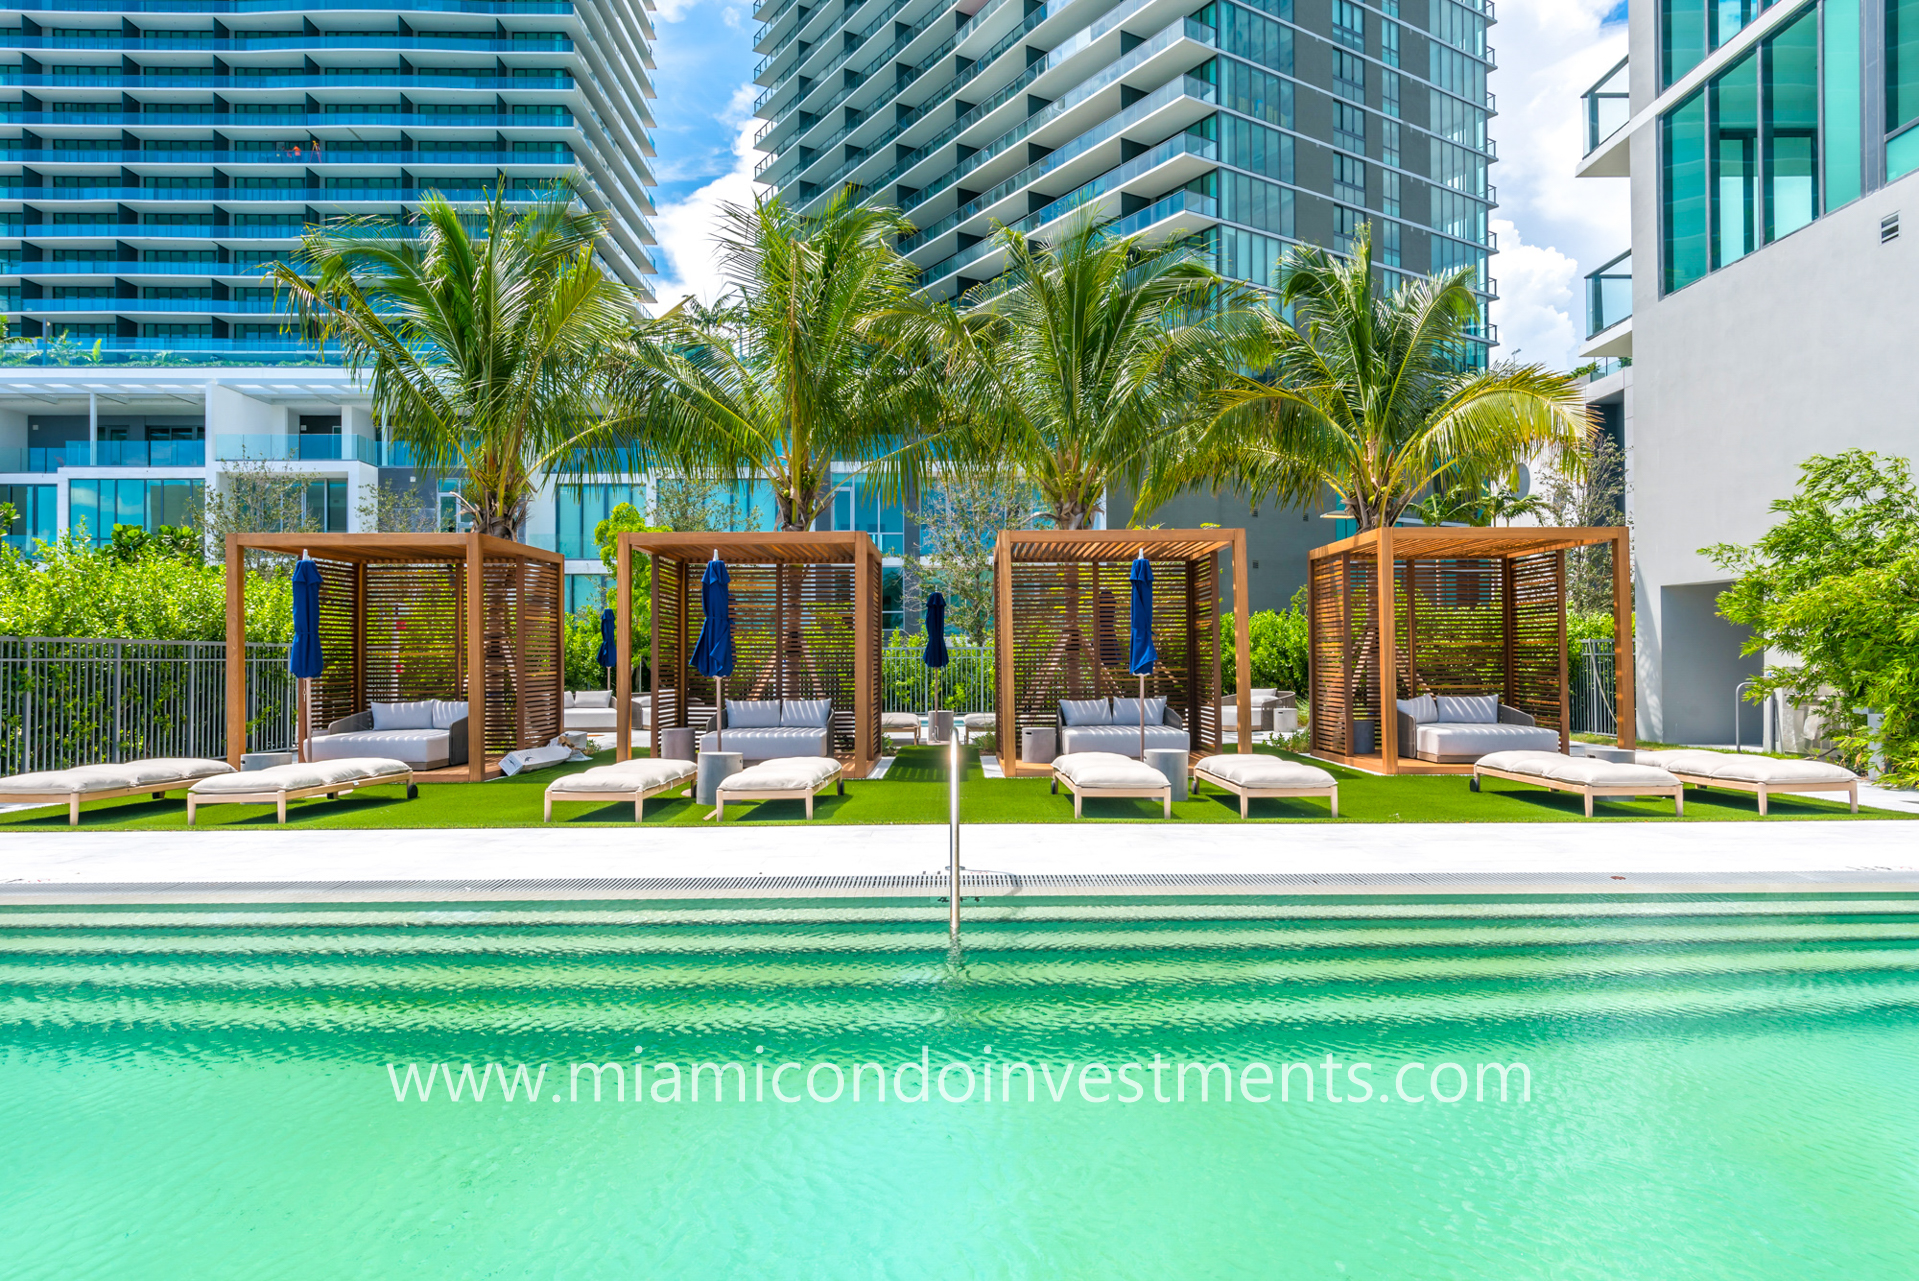 One Paraiso ground floor pool and cabanas